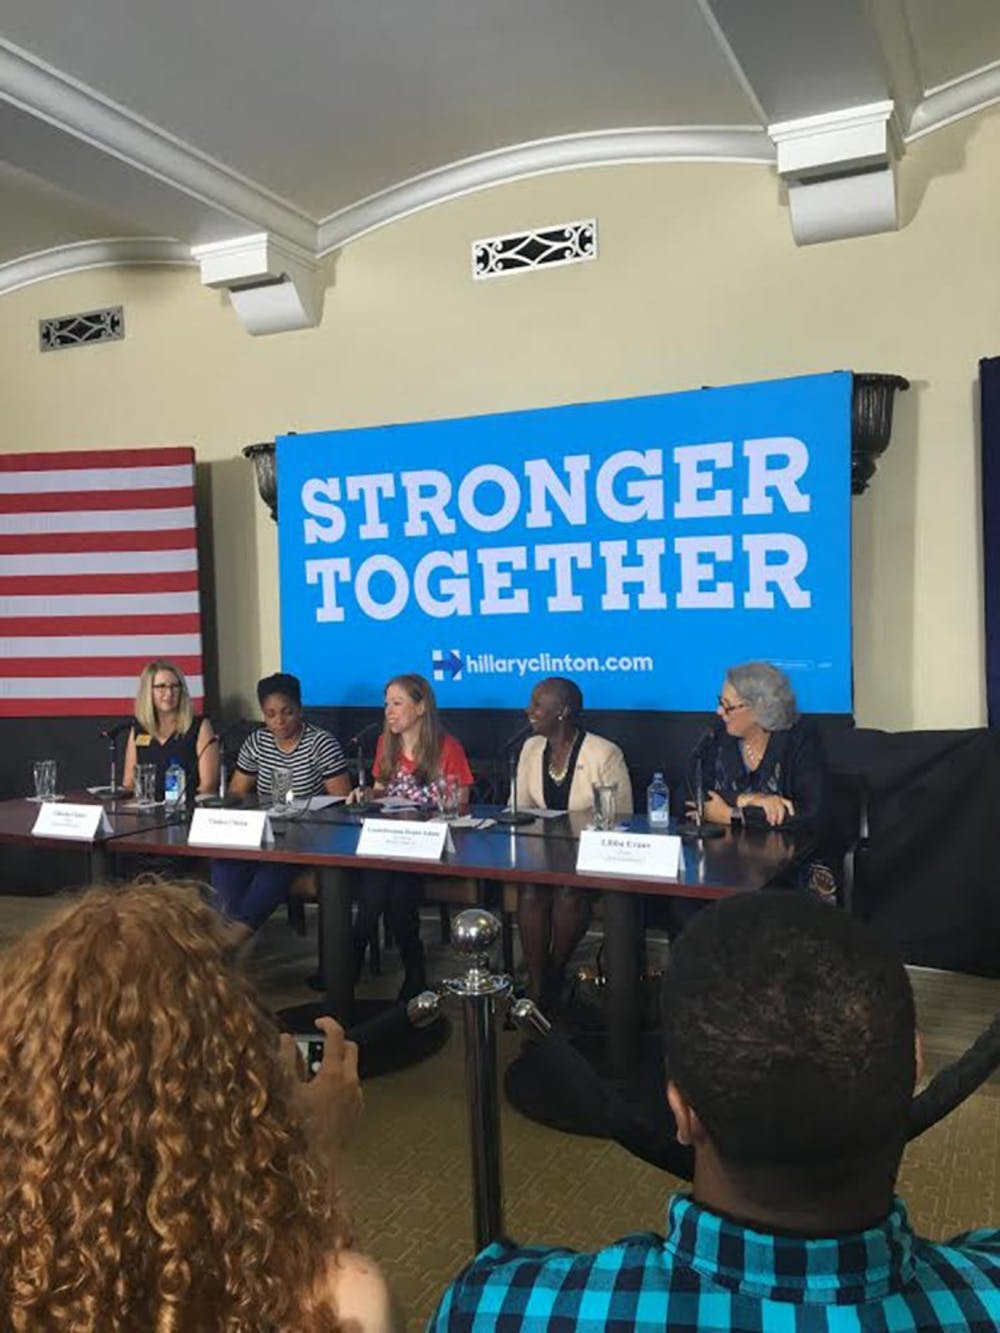 Chelsea Clinton visits North Carolina, discusses college affordability